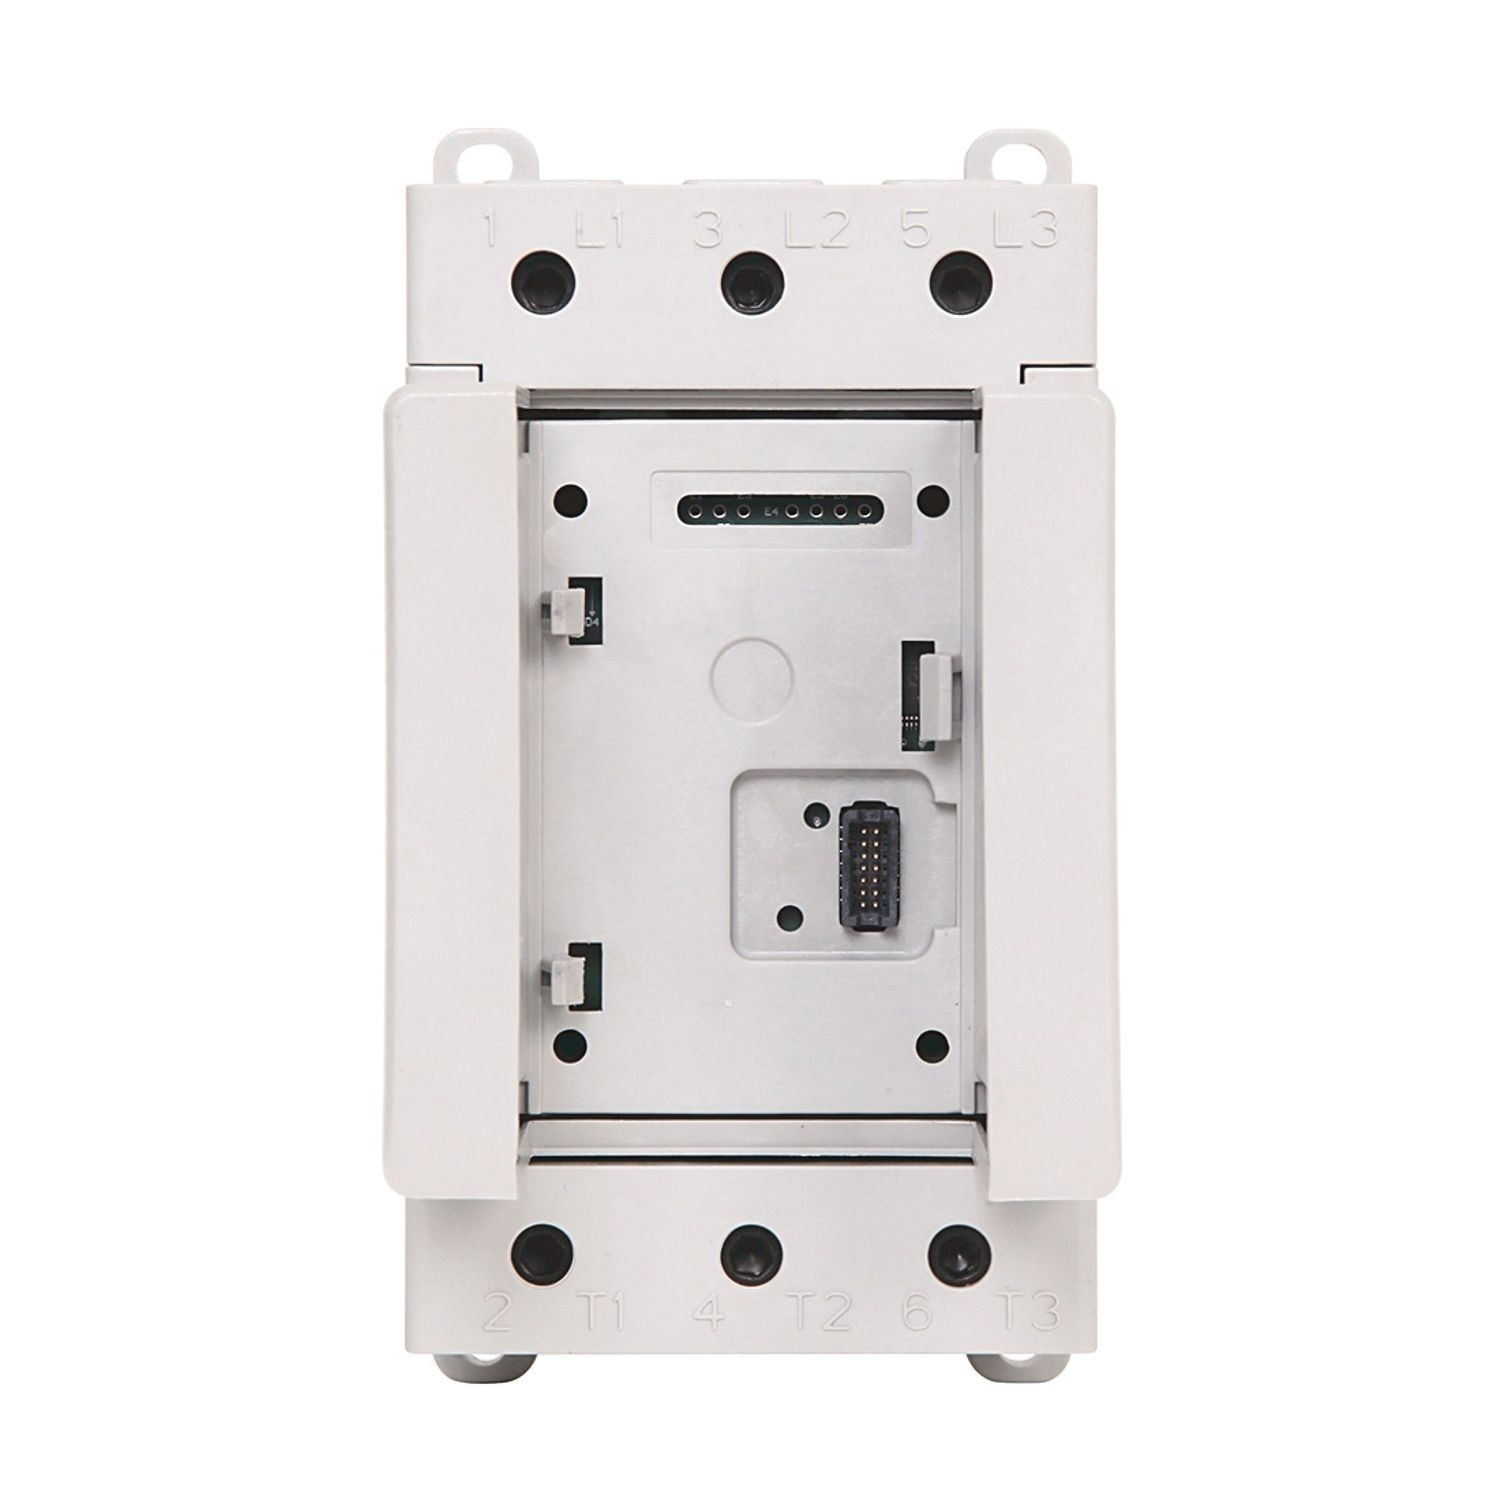 E300 Overload Relays 193 592 Iec Nema Current Sensing Module 10 Relay Circuit 10100 A Din Rail Panel Mount With Line And Load Side Power Conductor Terminals